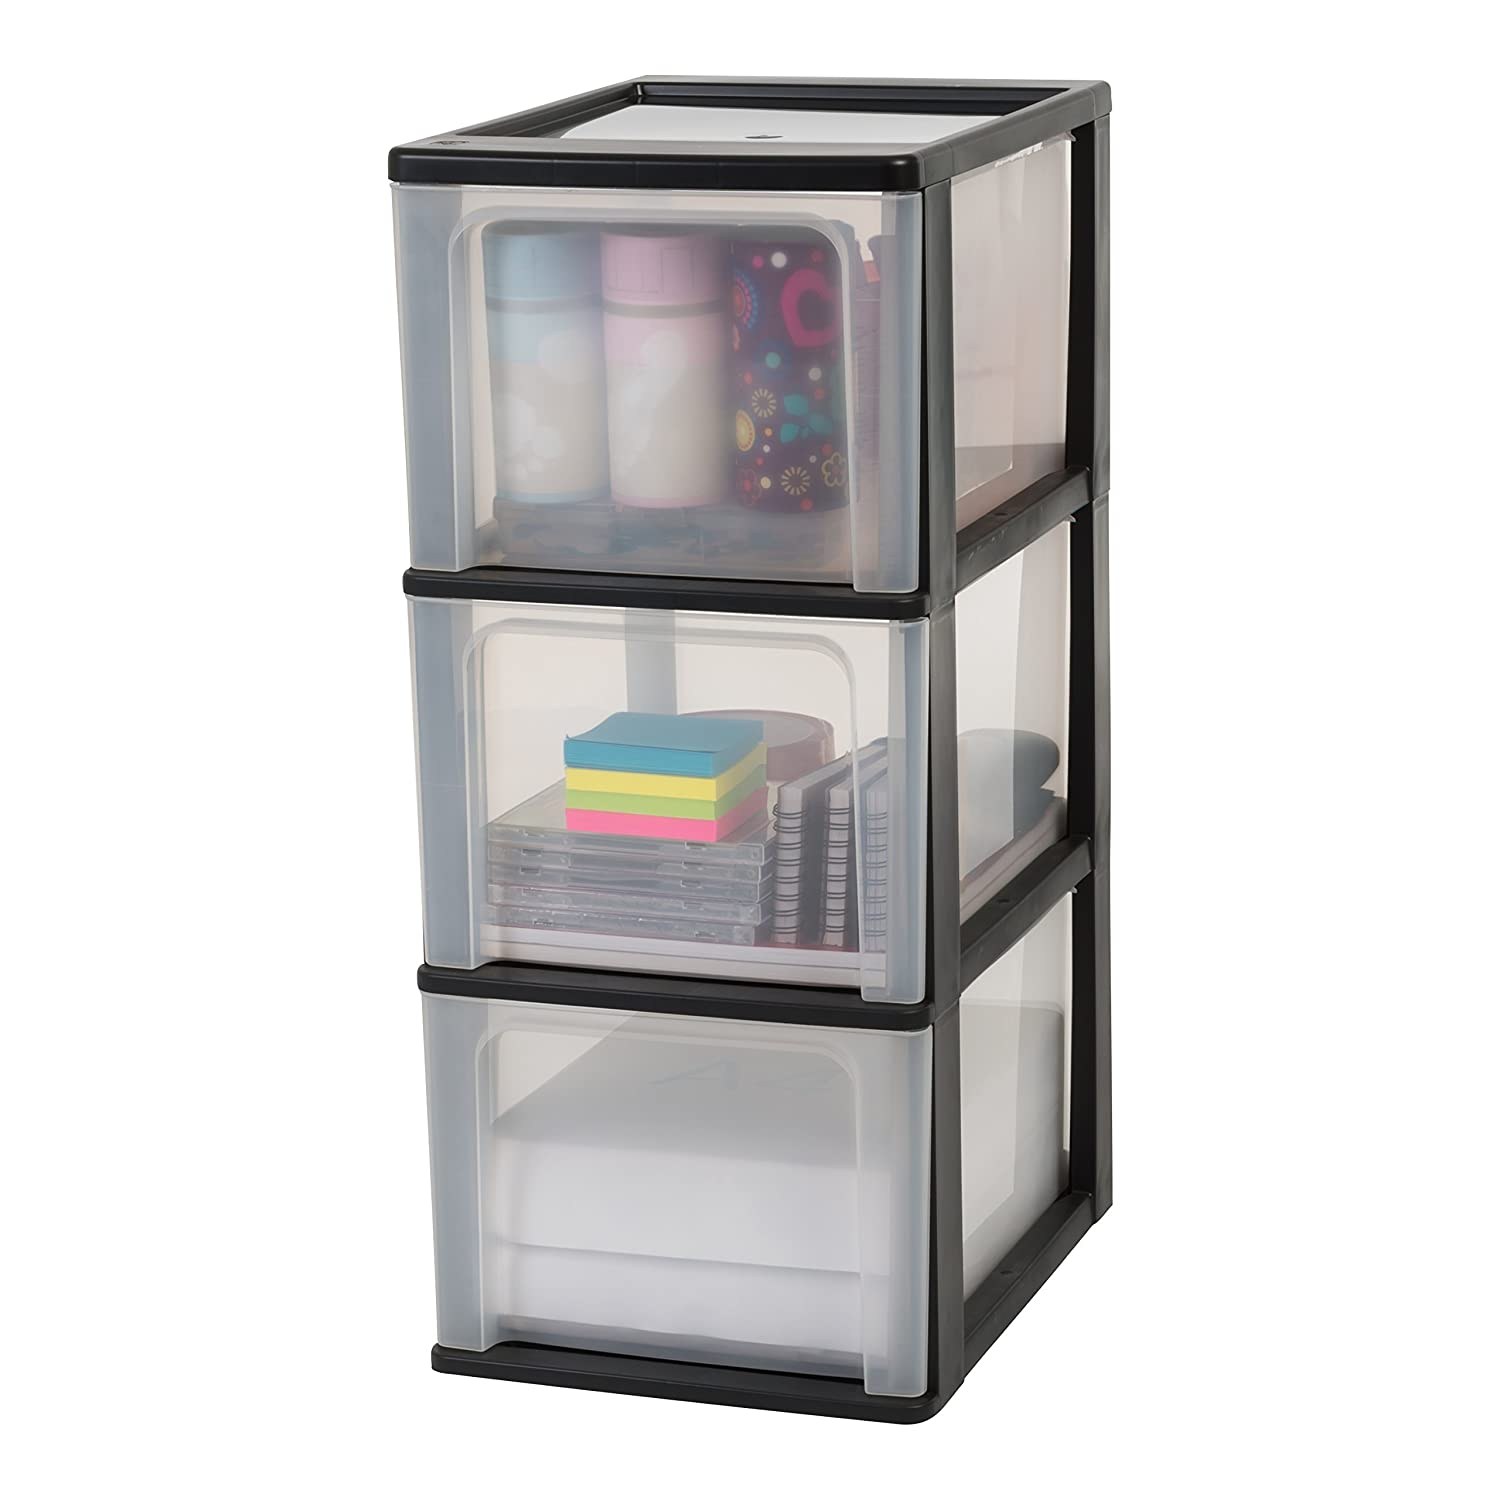 Iris Ohyama Europe A- 4 Chest with 3 (Without Wheels), Tower Unit six, Drawer Organiser, Plastic Office drawers-OCH-2300, Black 144005